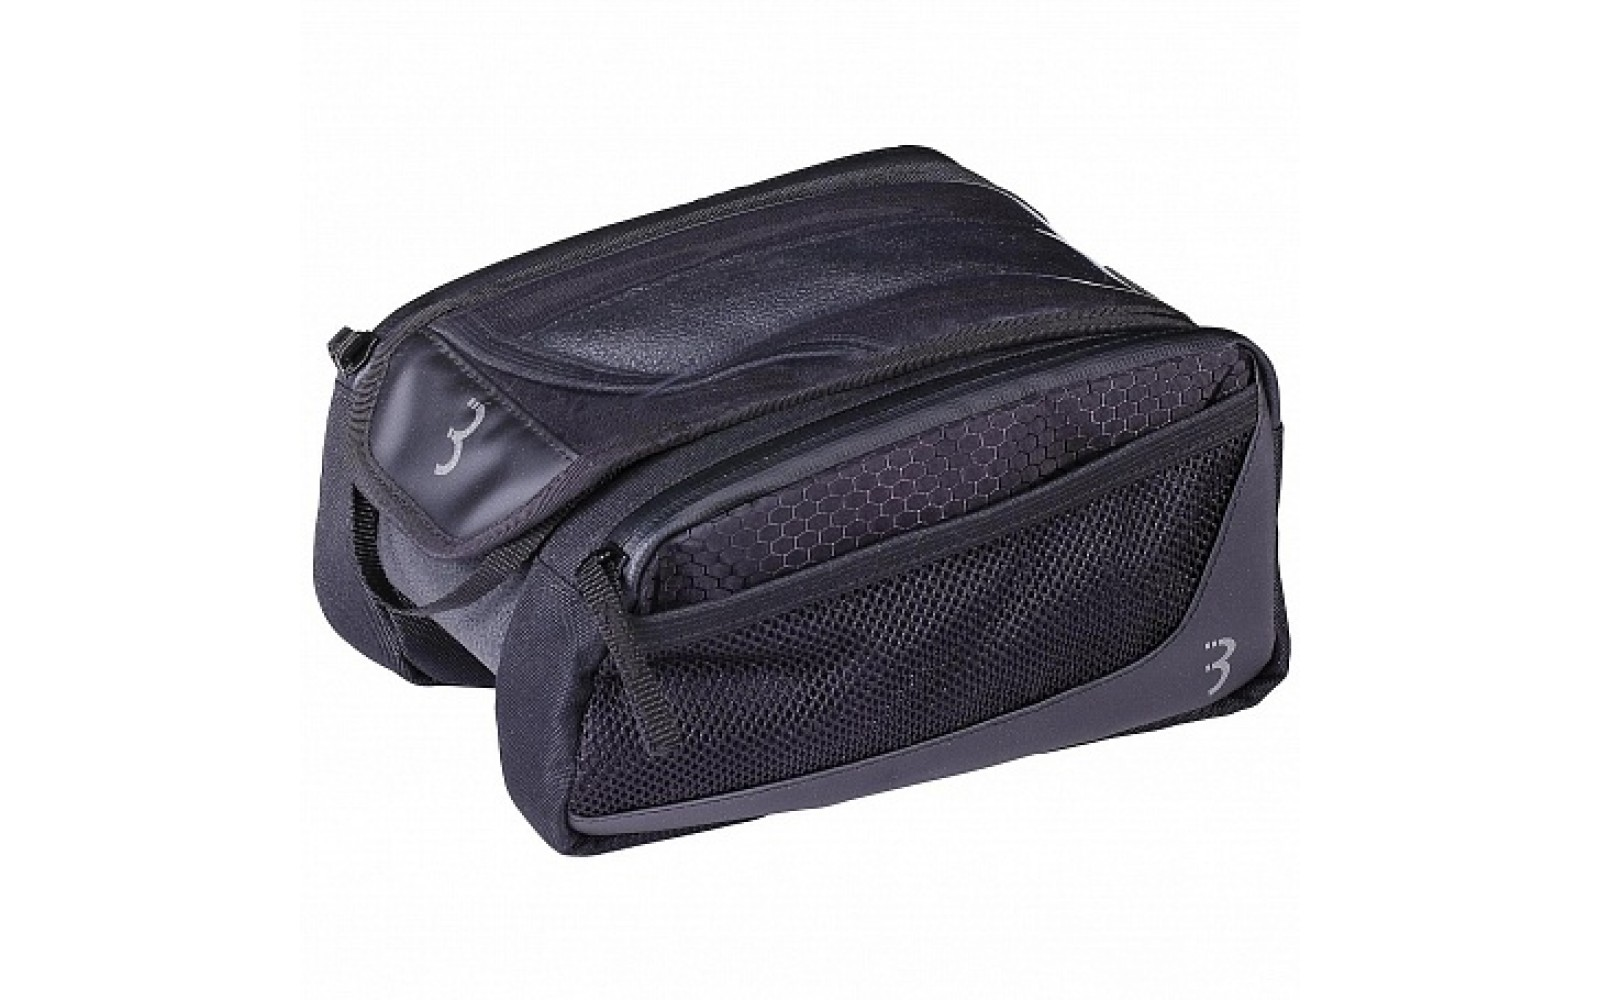 "Велосумка BBB 2019 tubebag TopTank X toptube bag with phone pouch and side pouches 20 x 16 x 11cm - 1.5L black <i class=""icon product-card_star-mask""></i>"